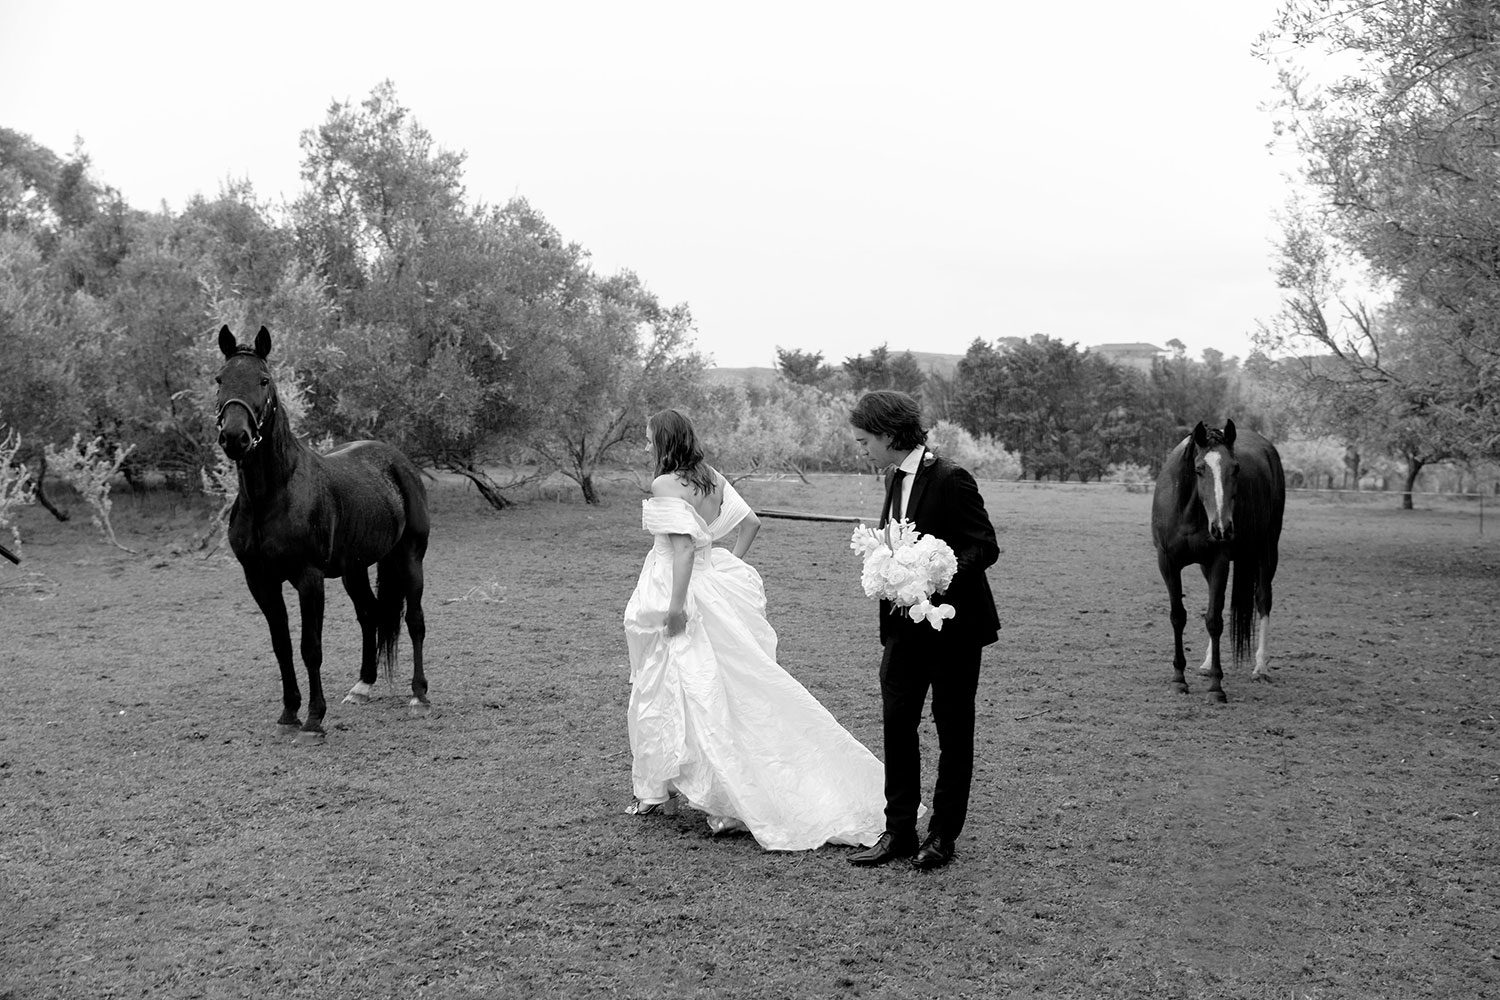 Bride wearing bespoke off shoulder bodice made with silk dupion and long train by NZ wedding dress maker Vinka Designs - black and white with groom and horses in field